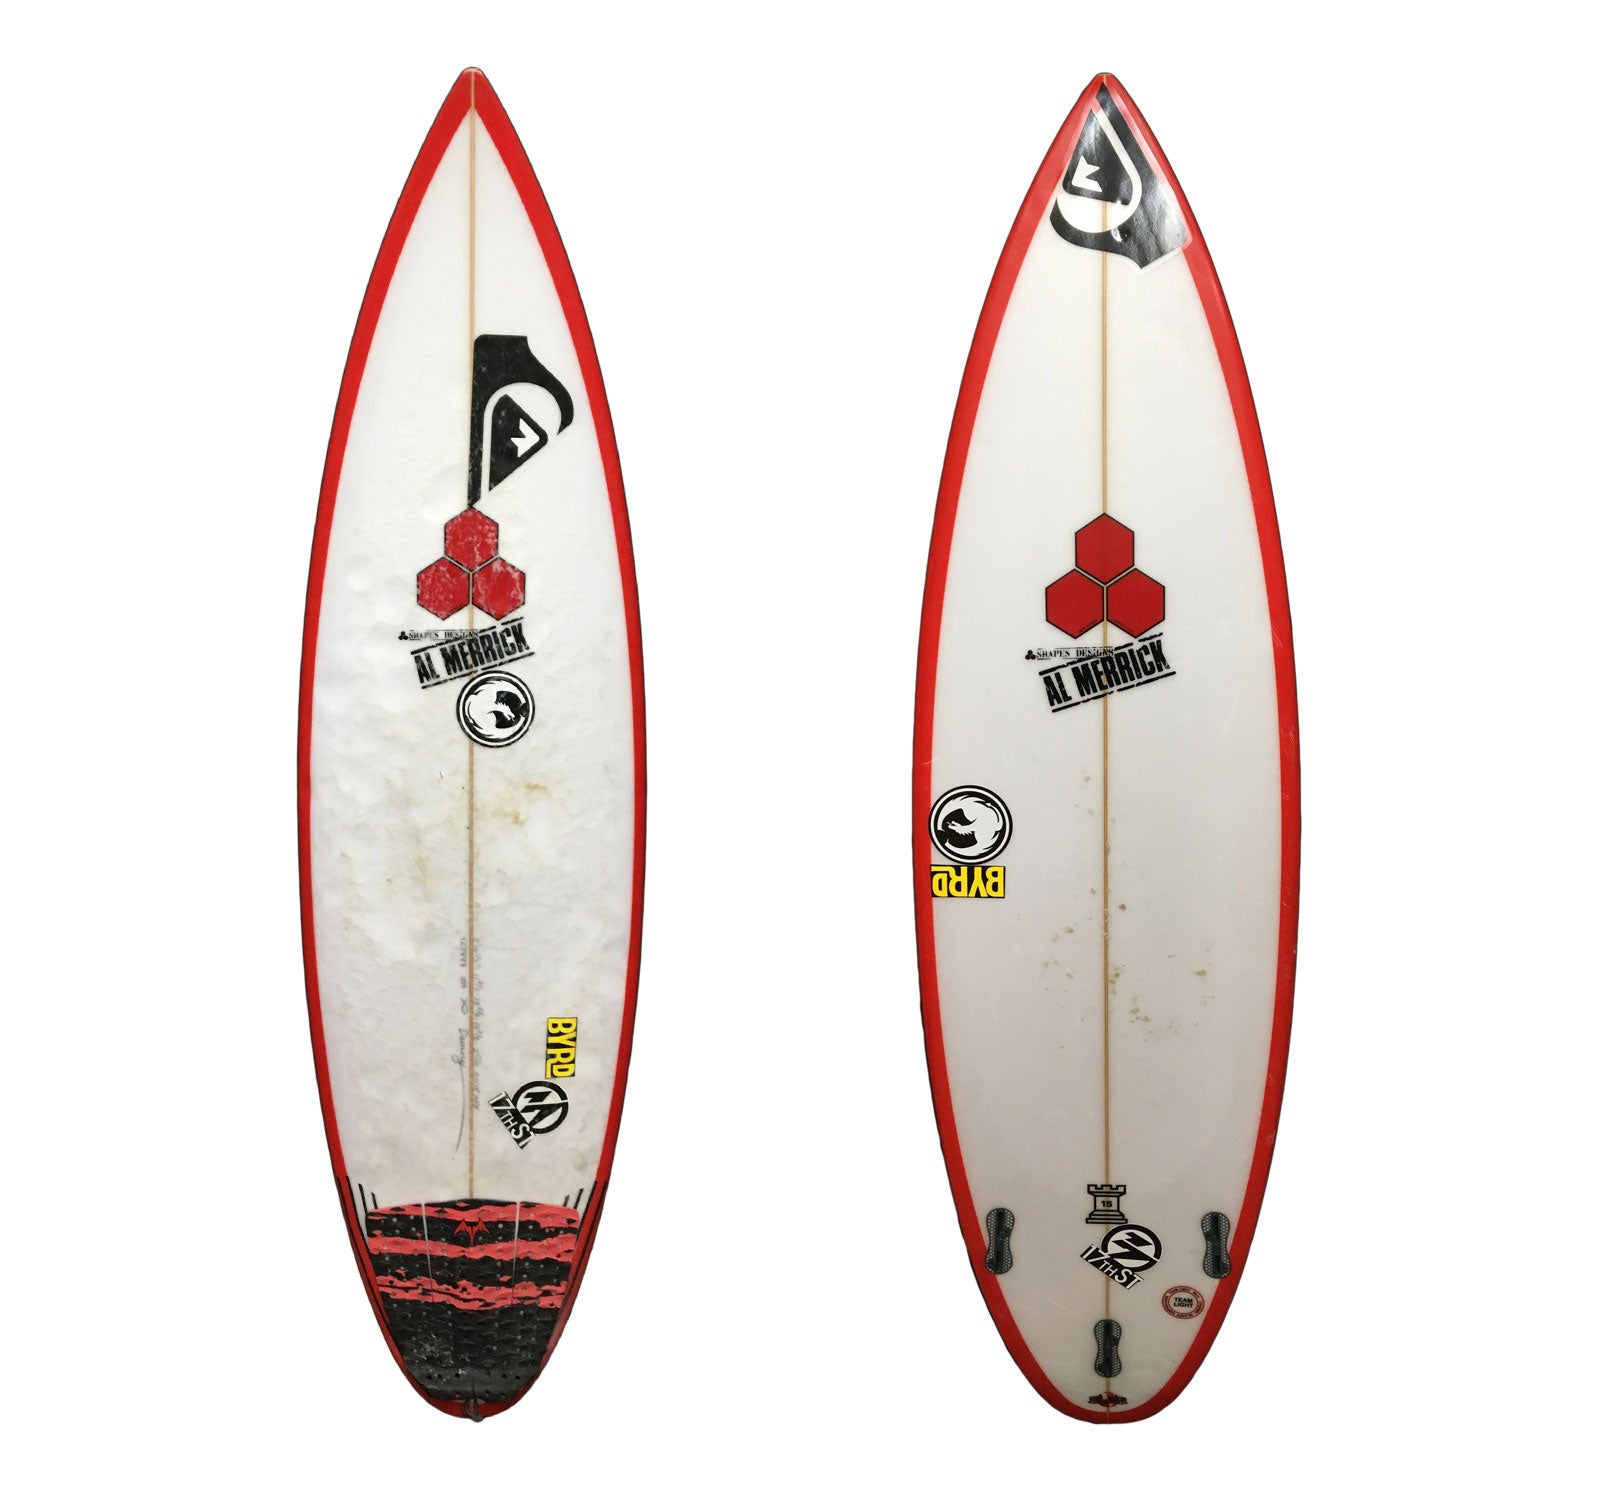 Channel Islands Rookie 15 5'10 1/2  x 18 5/8 x 2 5/16 Used Surfboard (Team Custom For Michael Dunphy)